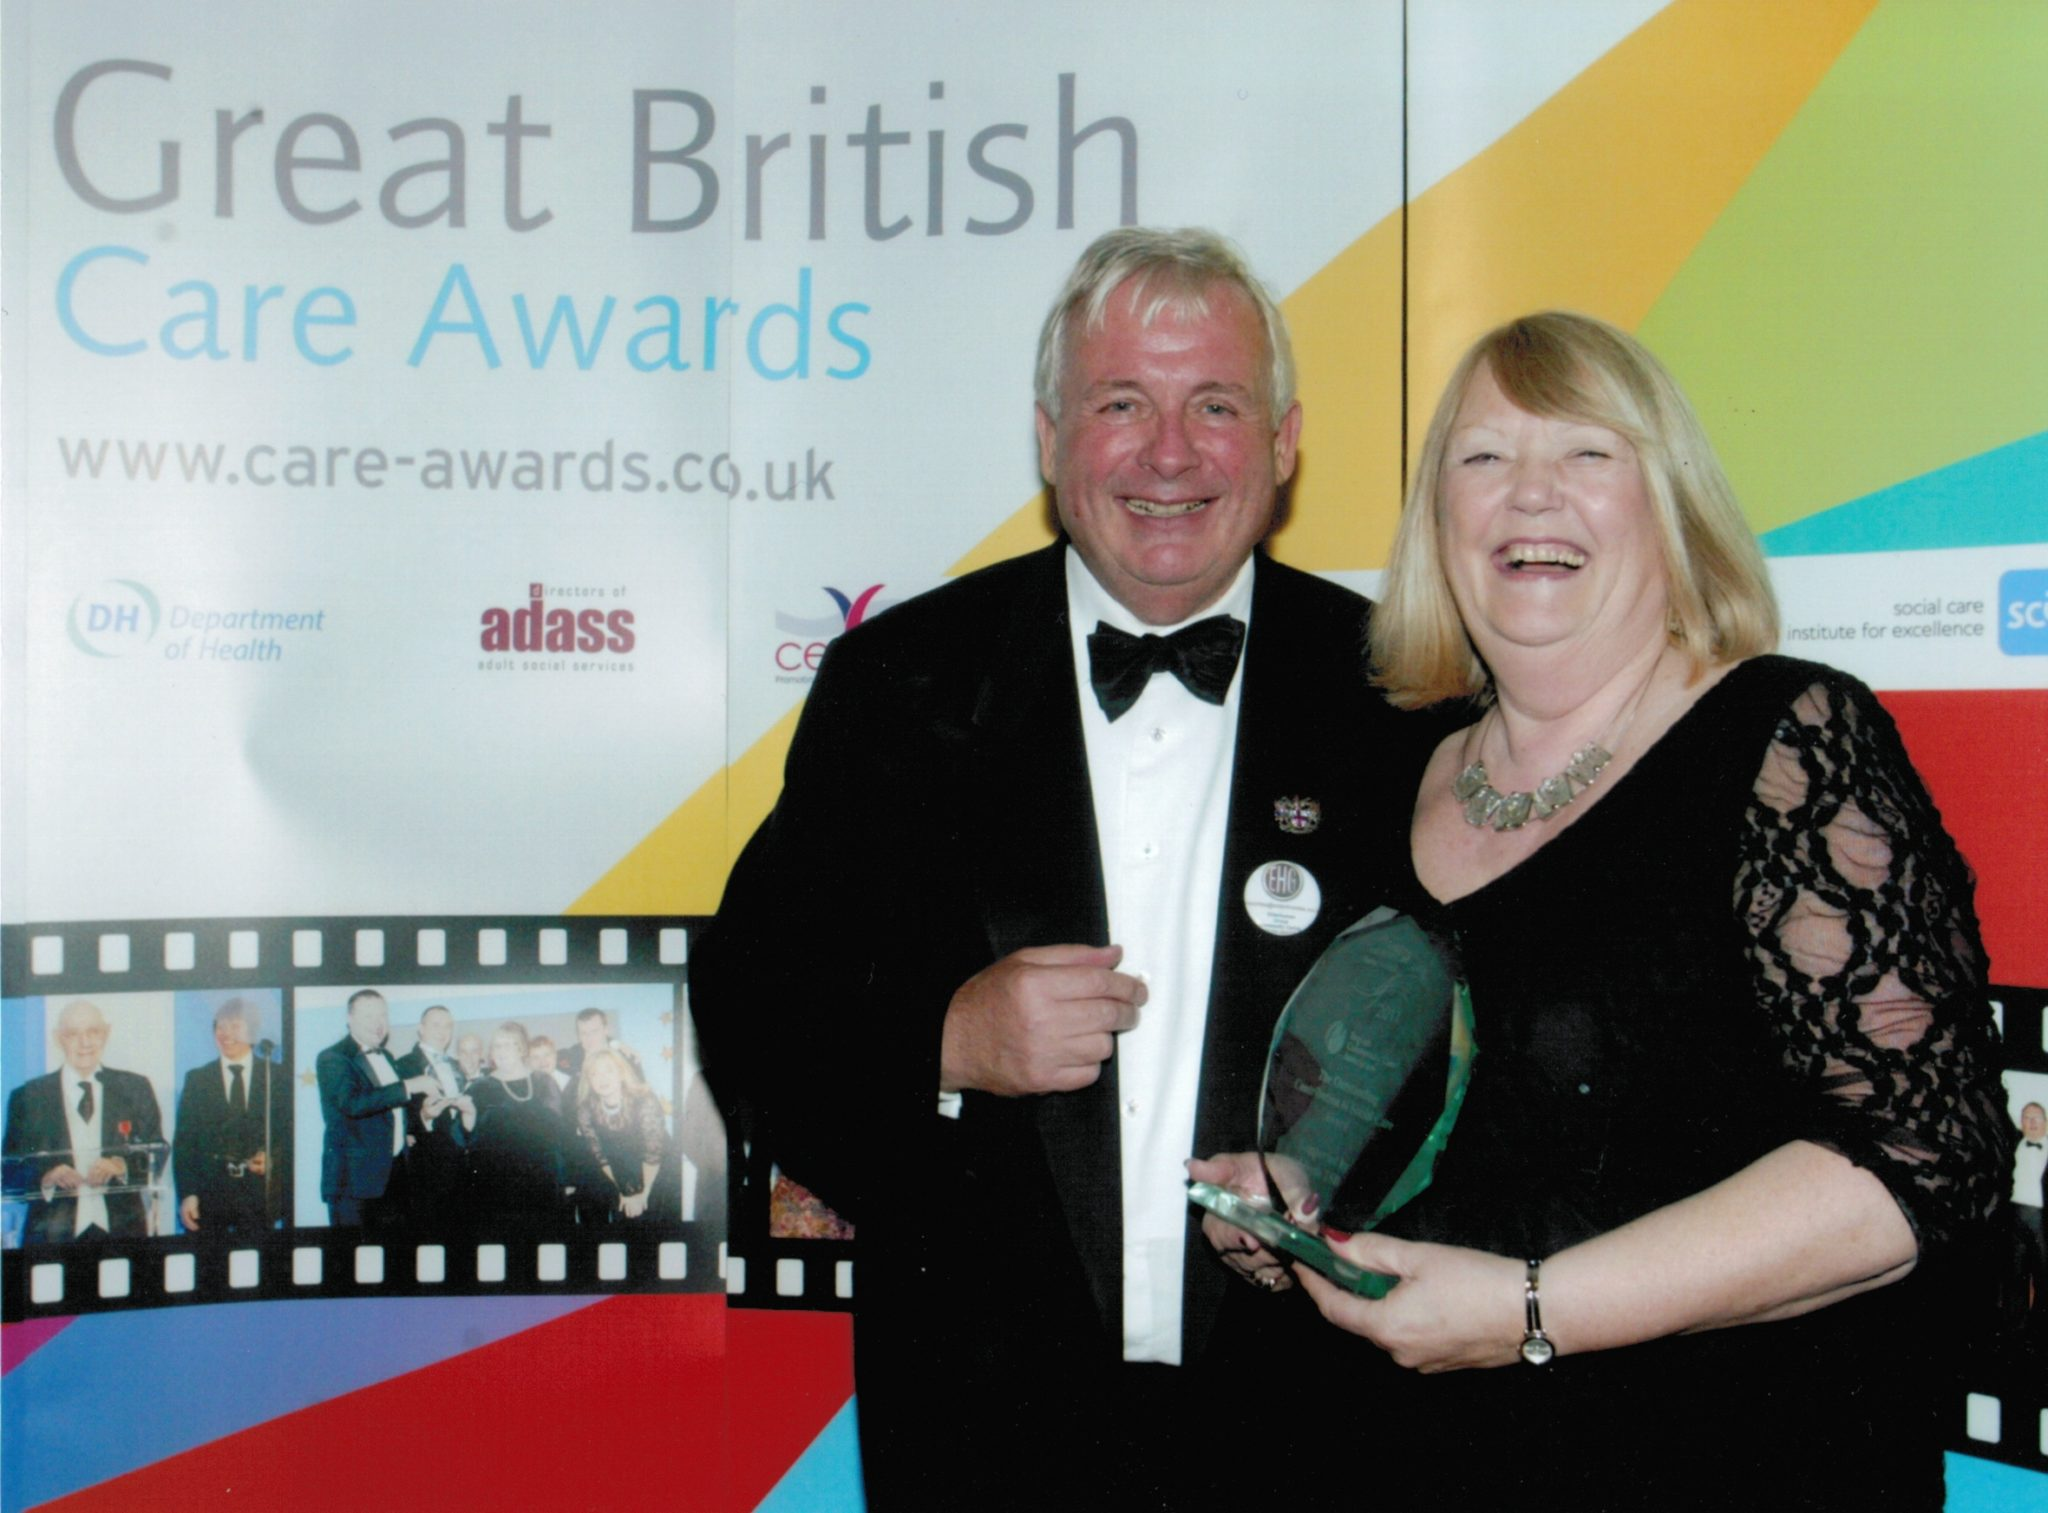 Erica Lockhart – Great British Care Awards